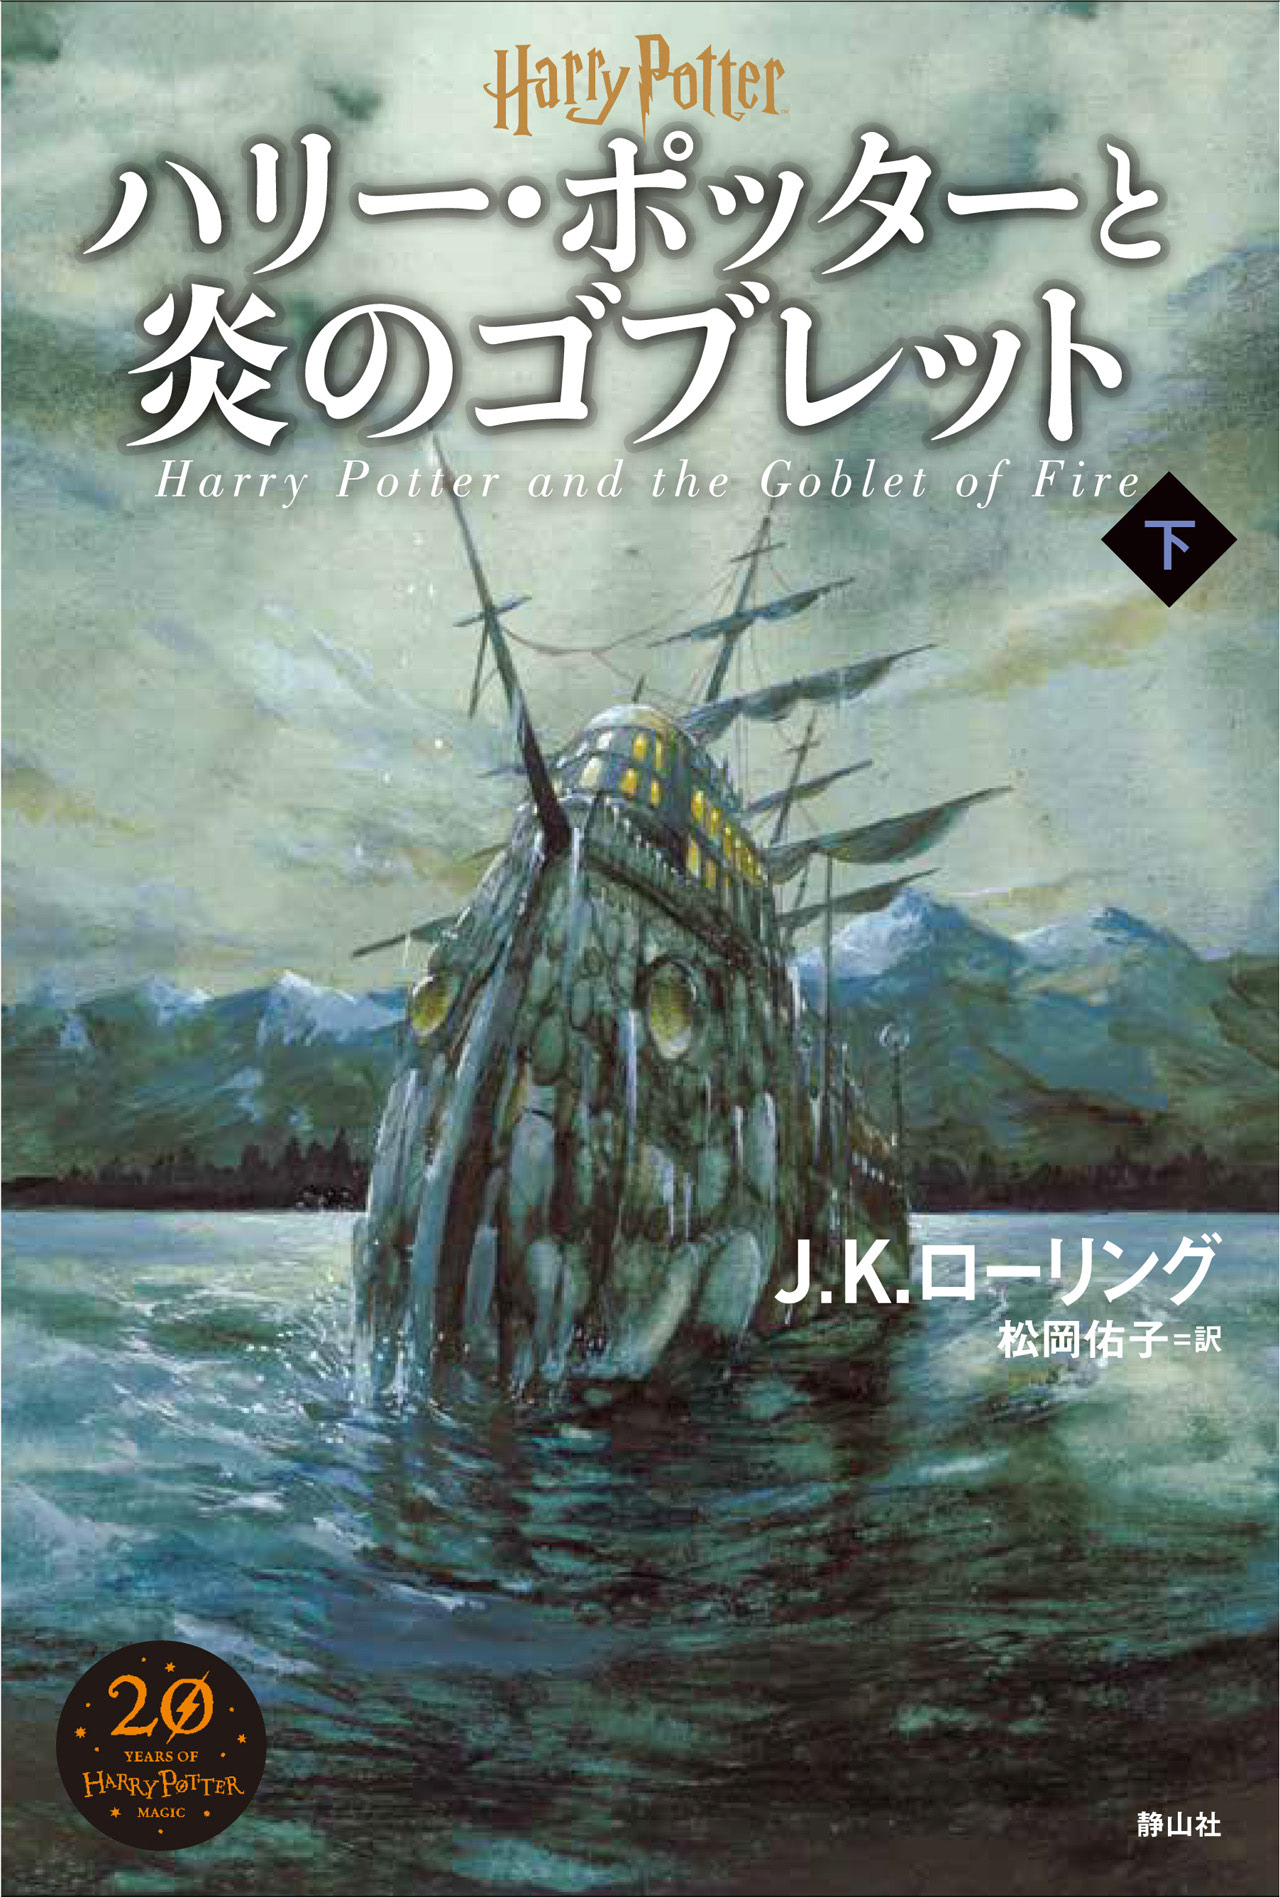 'Goblet of Fire' Japanese 20th anniversary edition (volume 2)